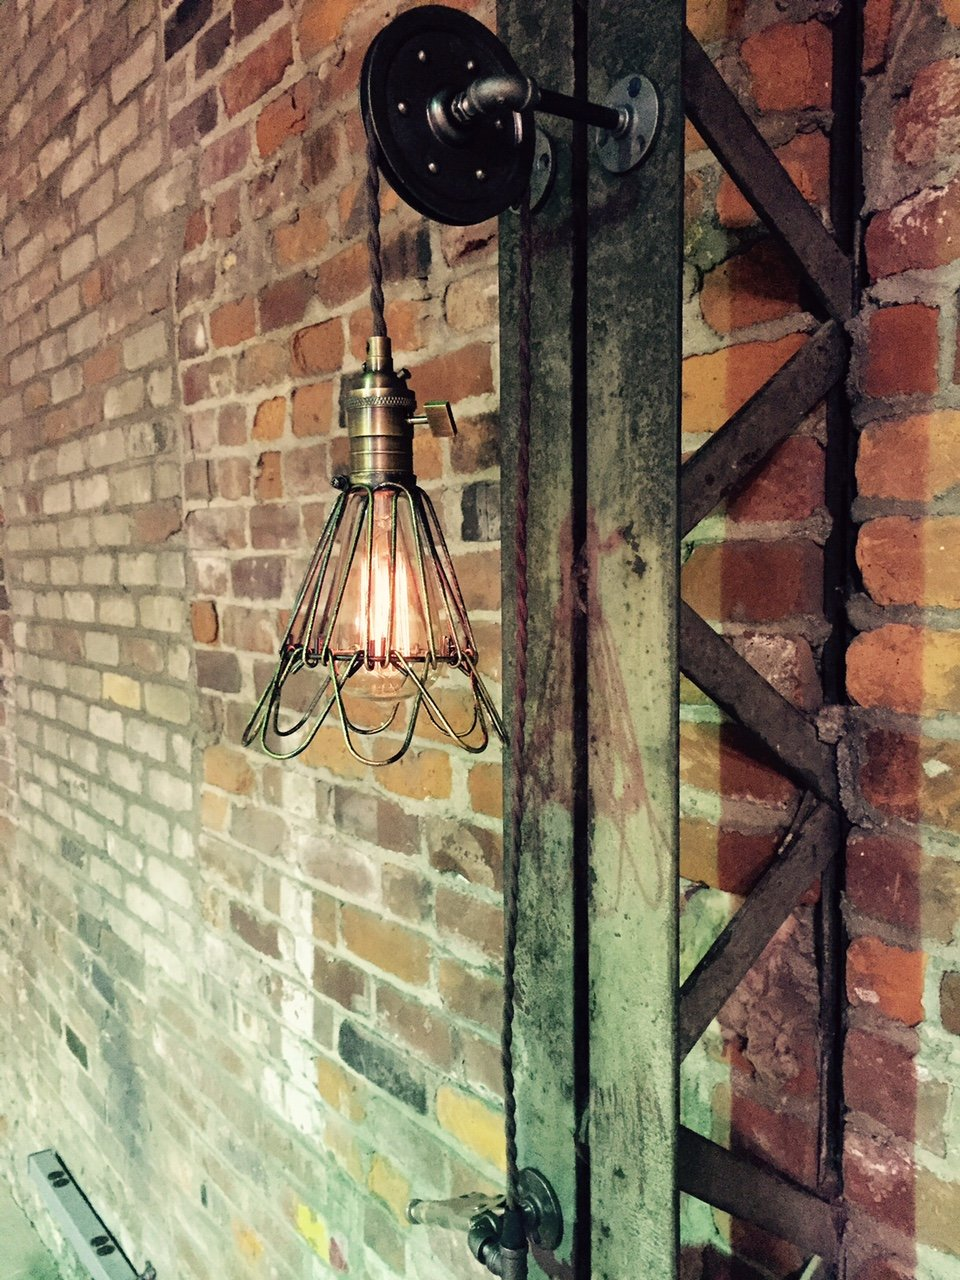 4'' Pulley Wall Mount Light with Antiqued Cage Pendant Light on Aged Pulley Mount - Built in the USA by Industrial Rewind